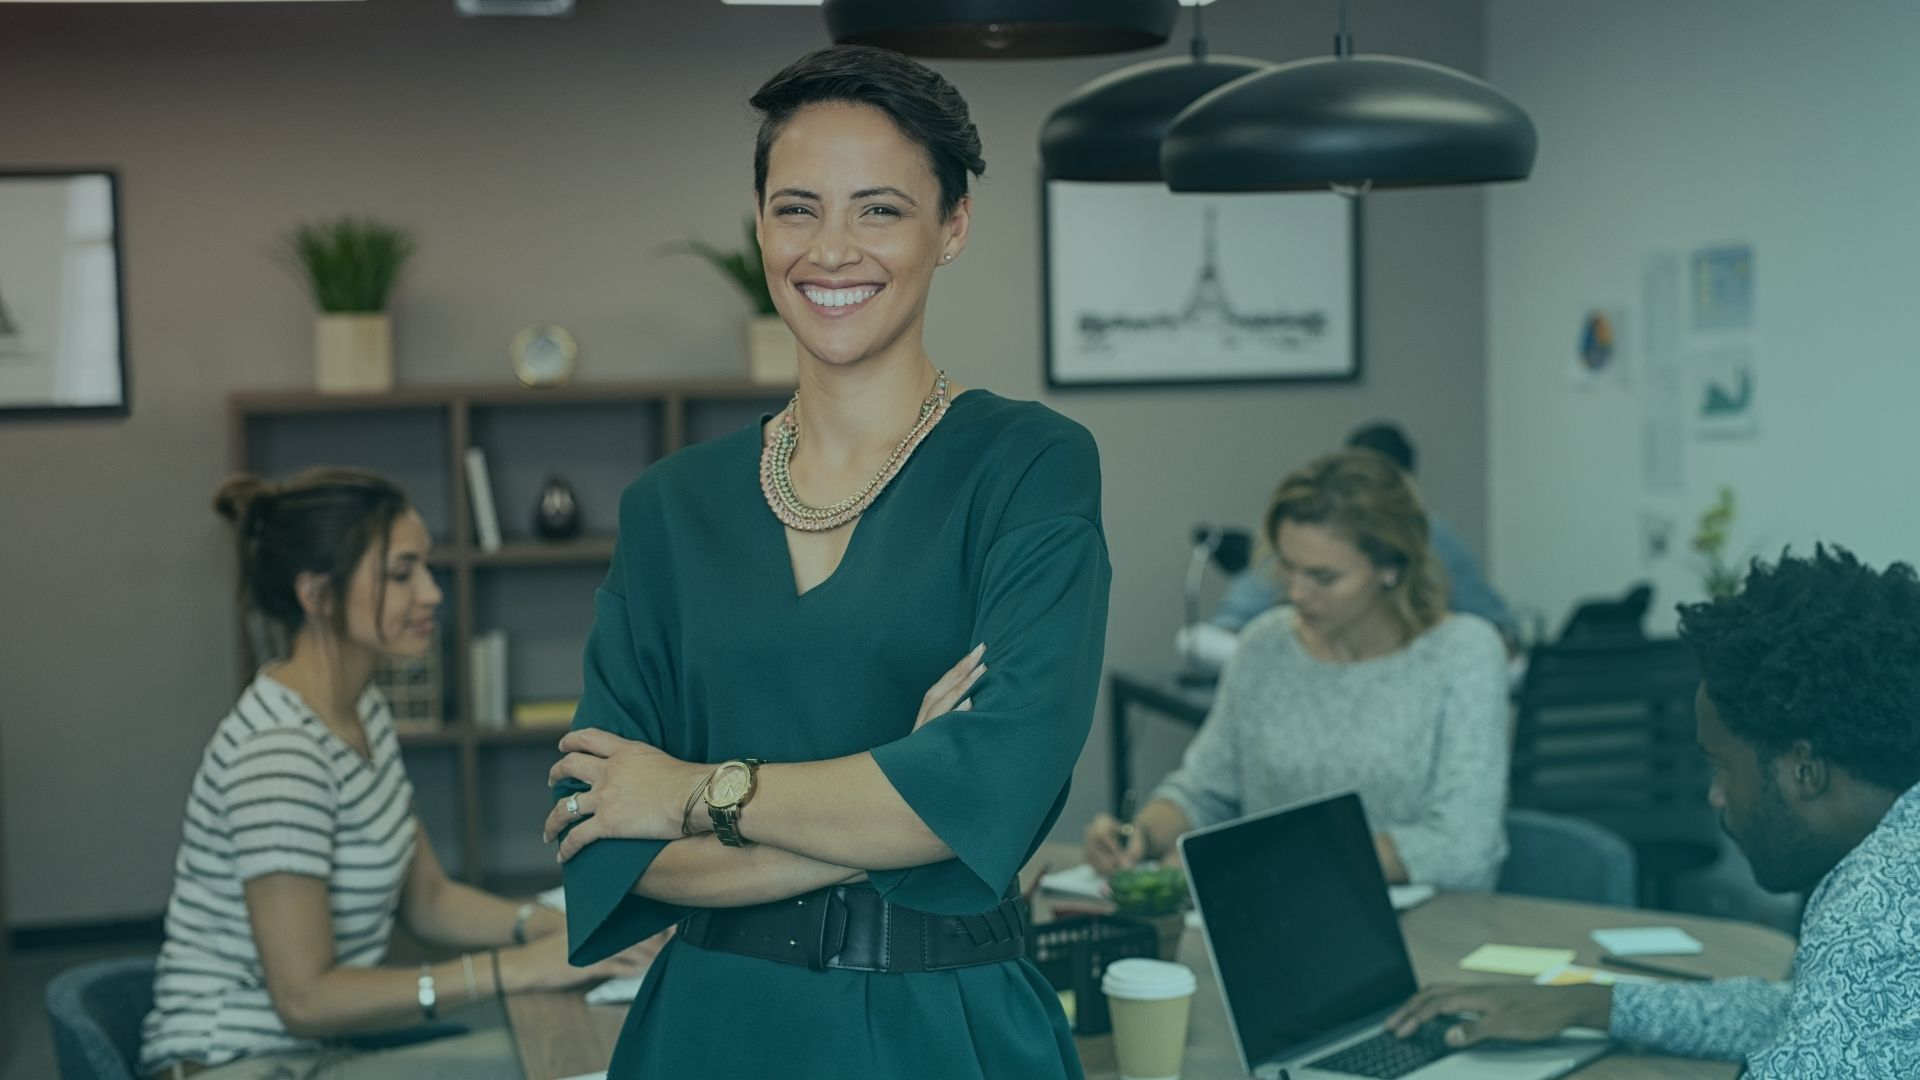 Are Your Customers Aware You Exist?